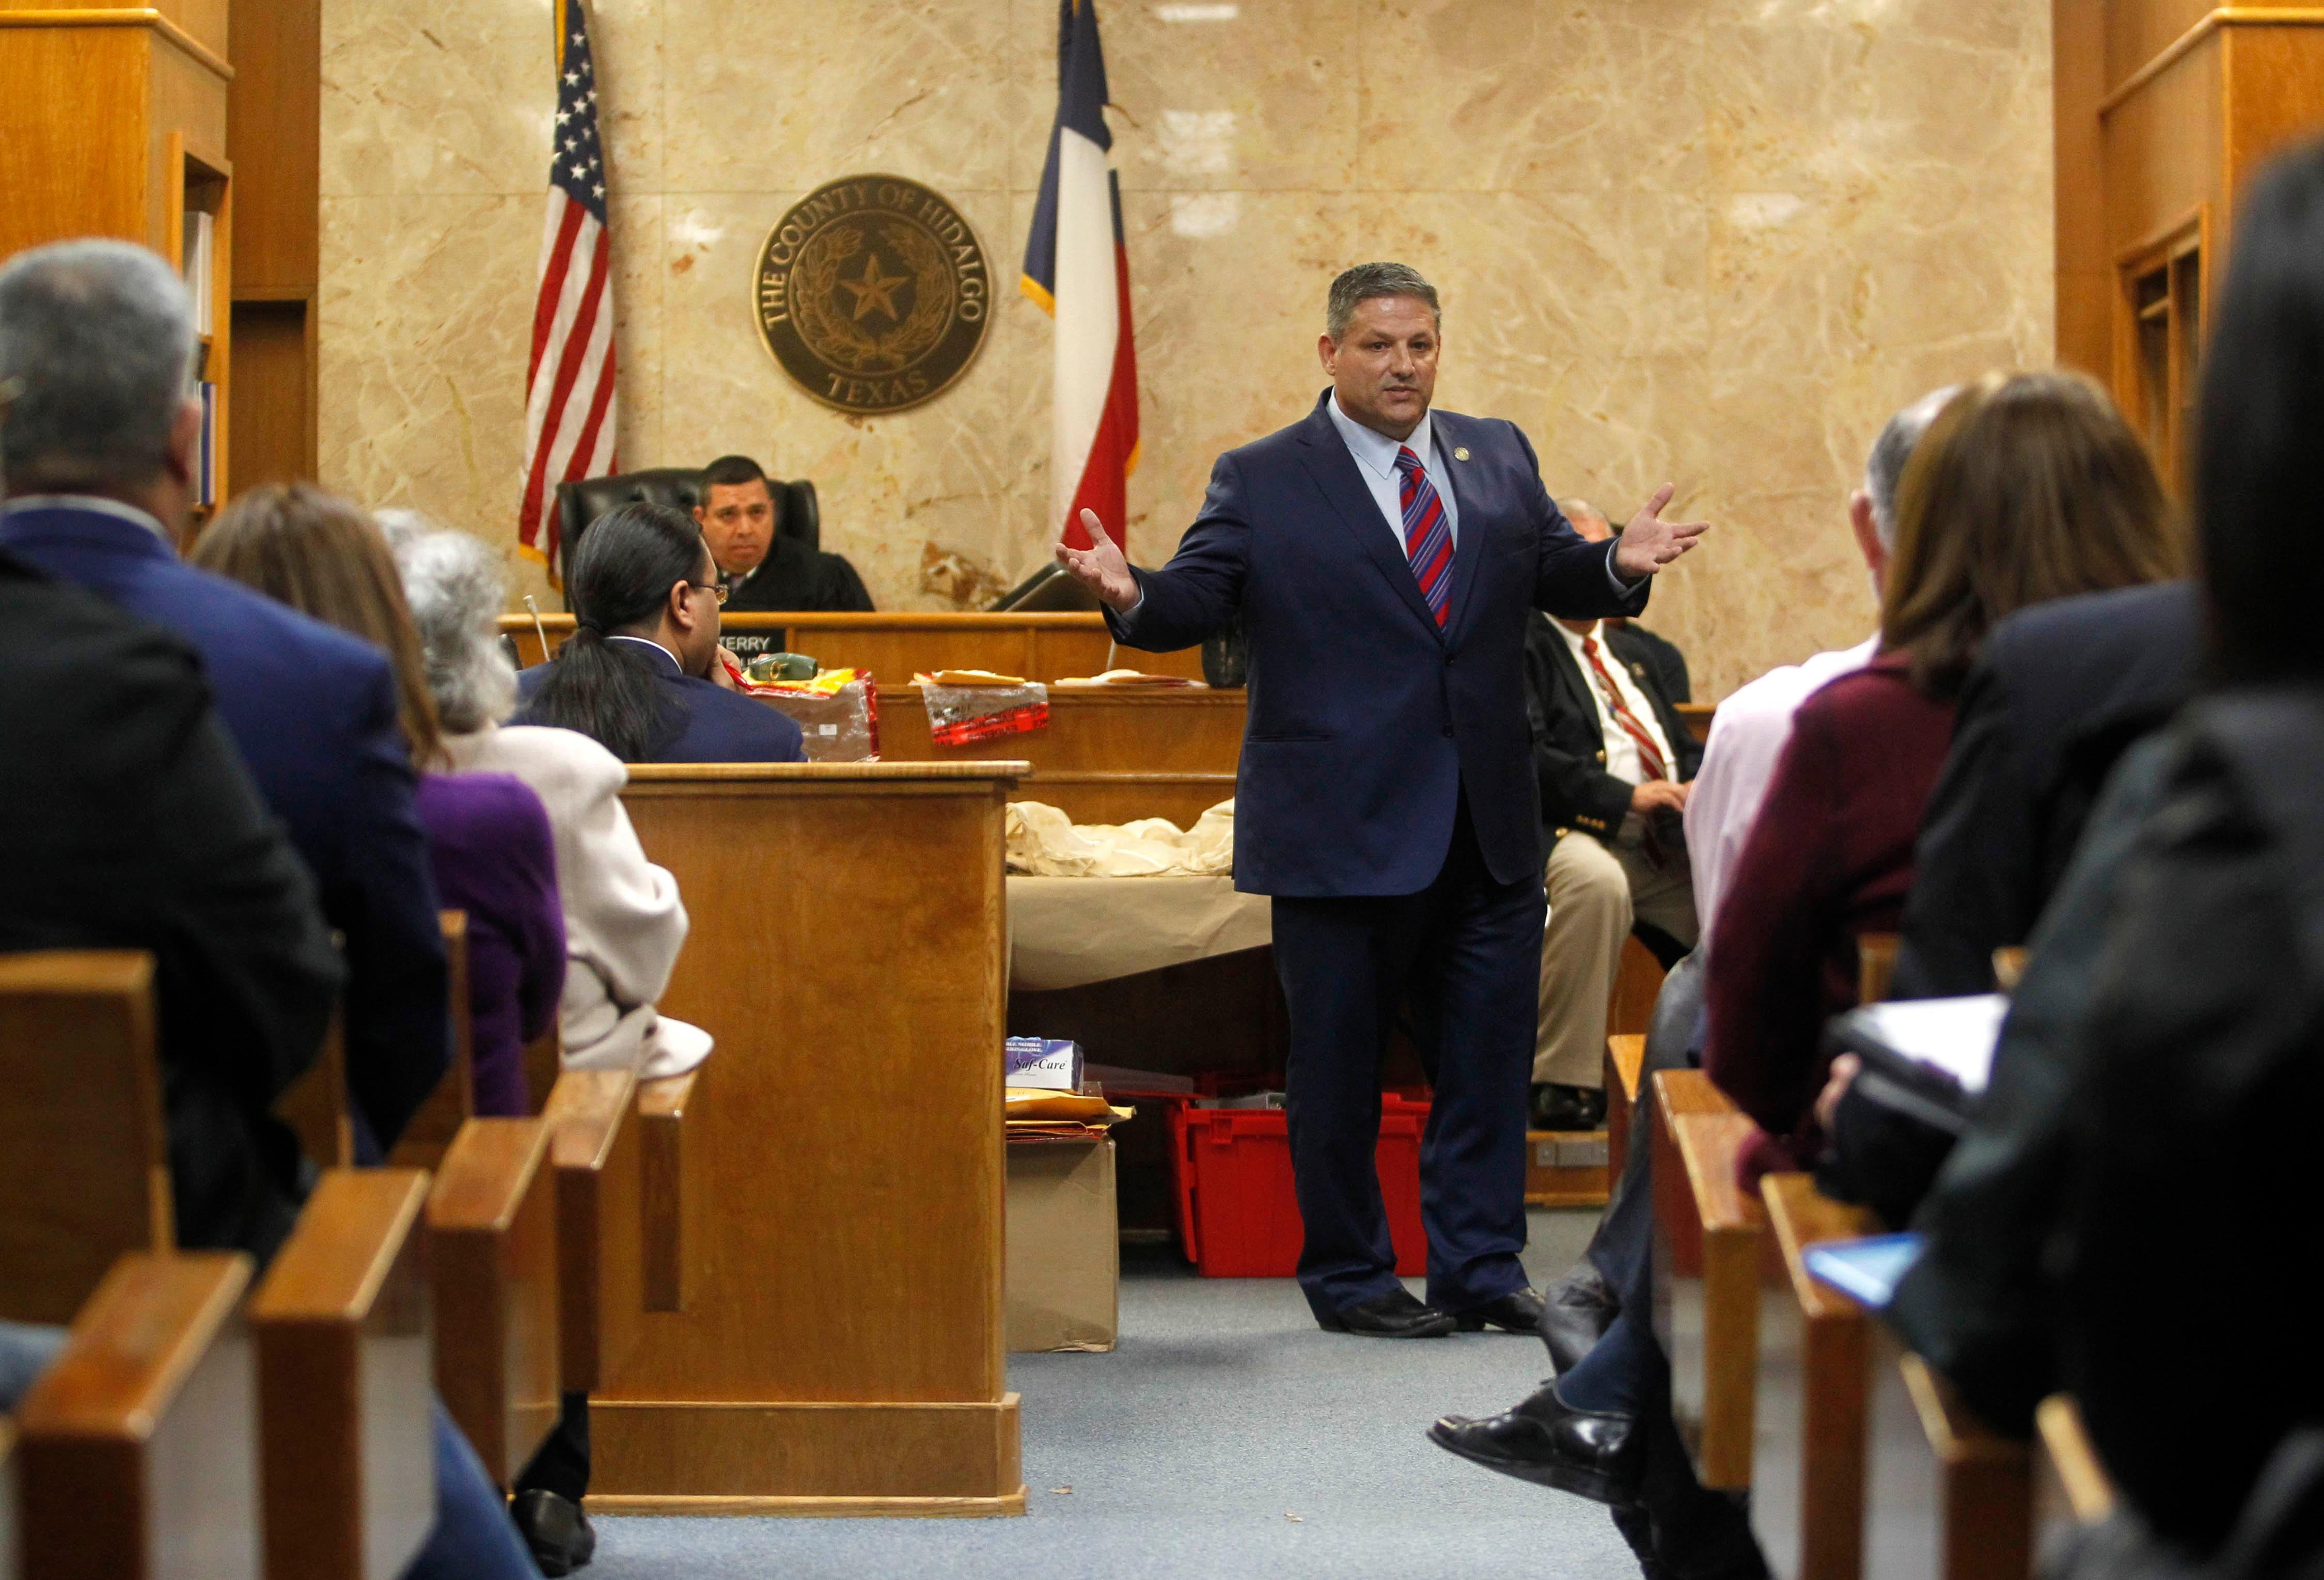 Hidalgo County Assistant District Attorney Michael Garza presents his closing argument in John Bernard Feit's trial for the 1960 murder of Irene Garza in the 92nd state District Court Thursday, December 7, 2017, at the Hidalgo County Courthouse in Edinburg. (Nathan Lambrecht/The Monitor/Pool)